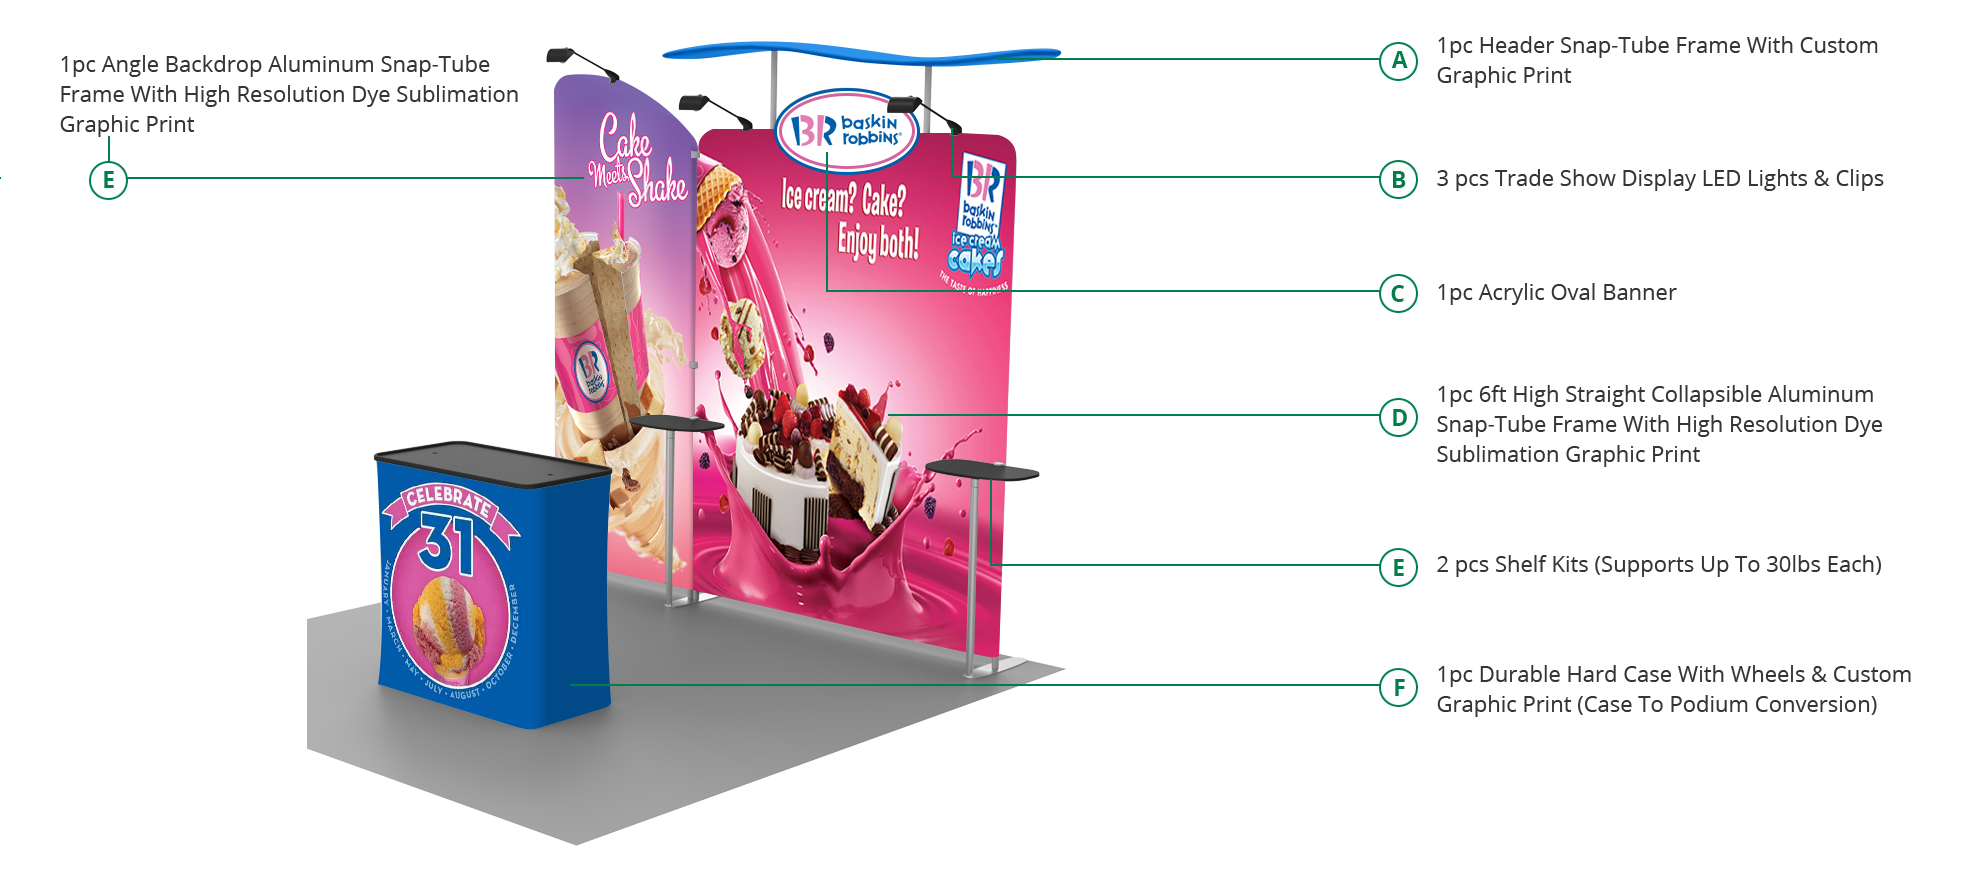 Tradeshow booth specifications